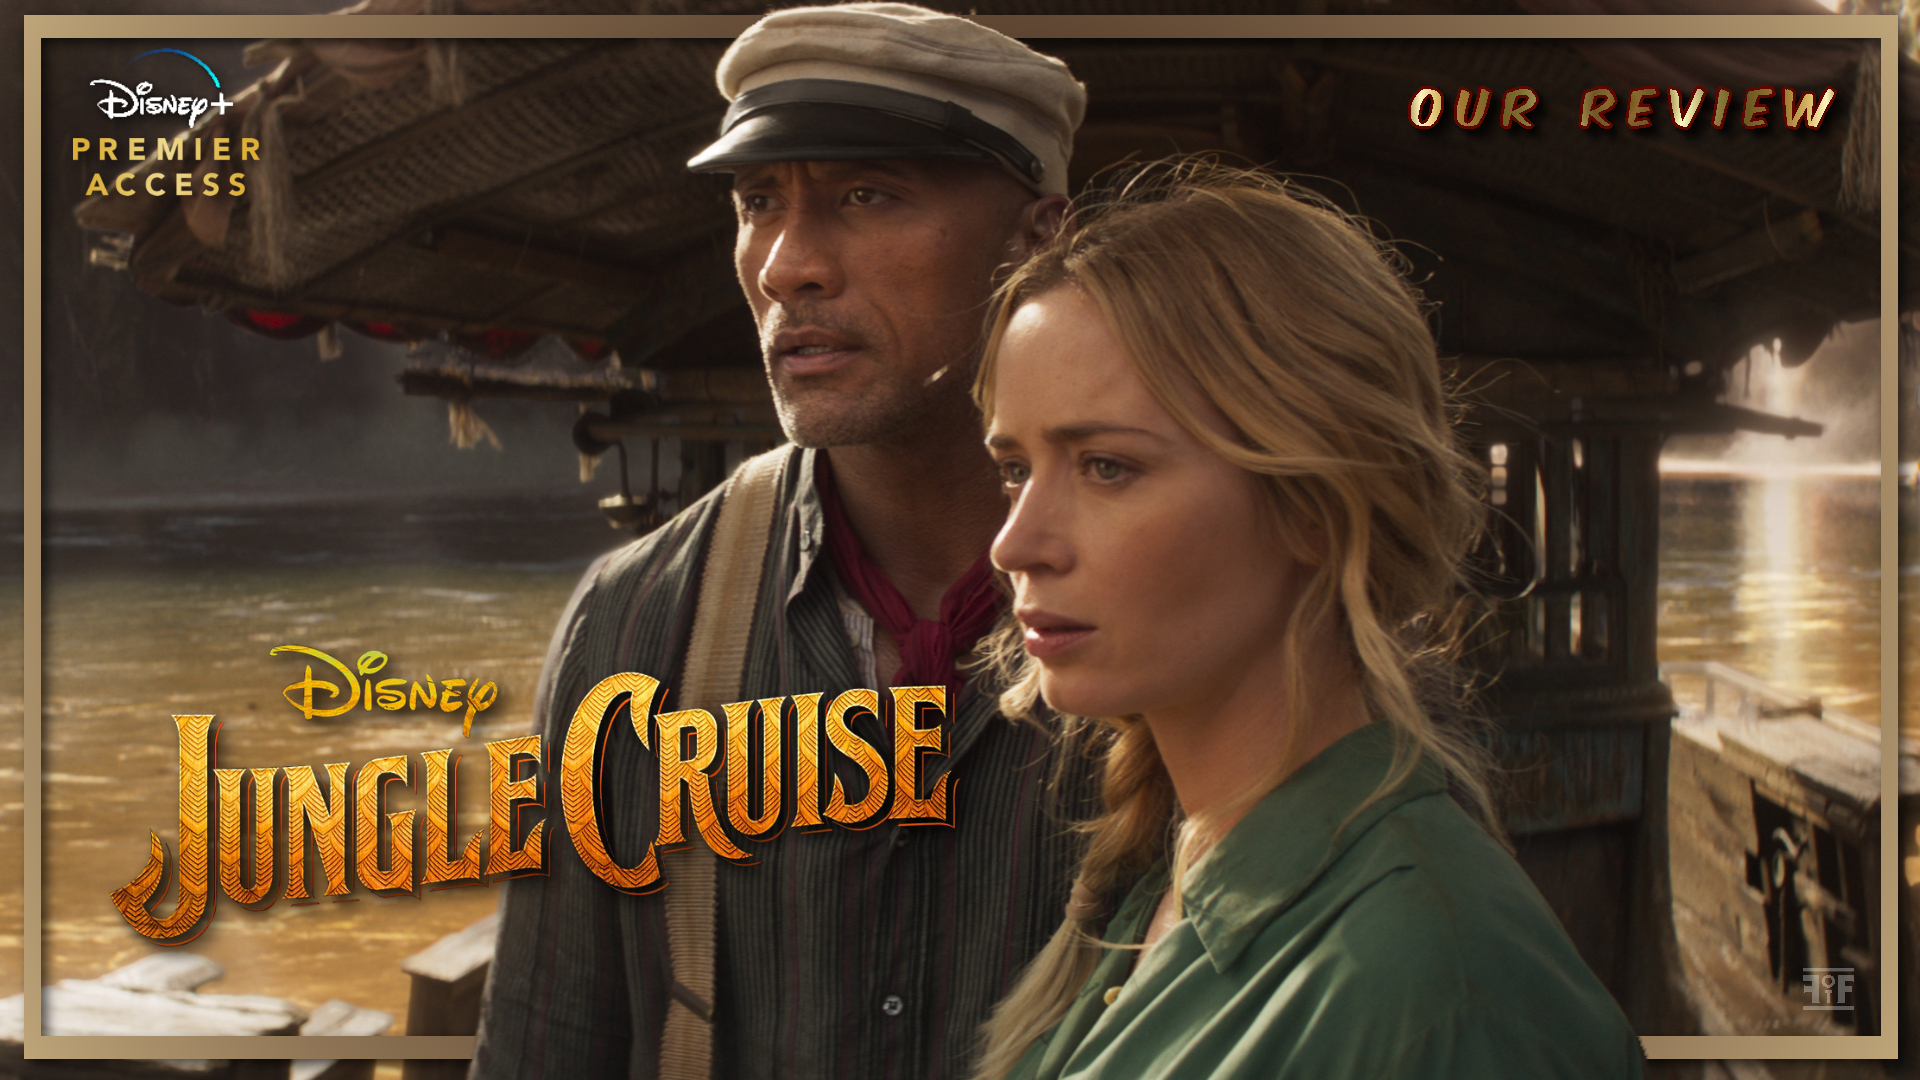 Disney's Jungle Cruise Review